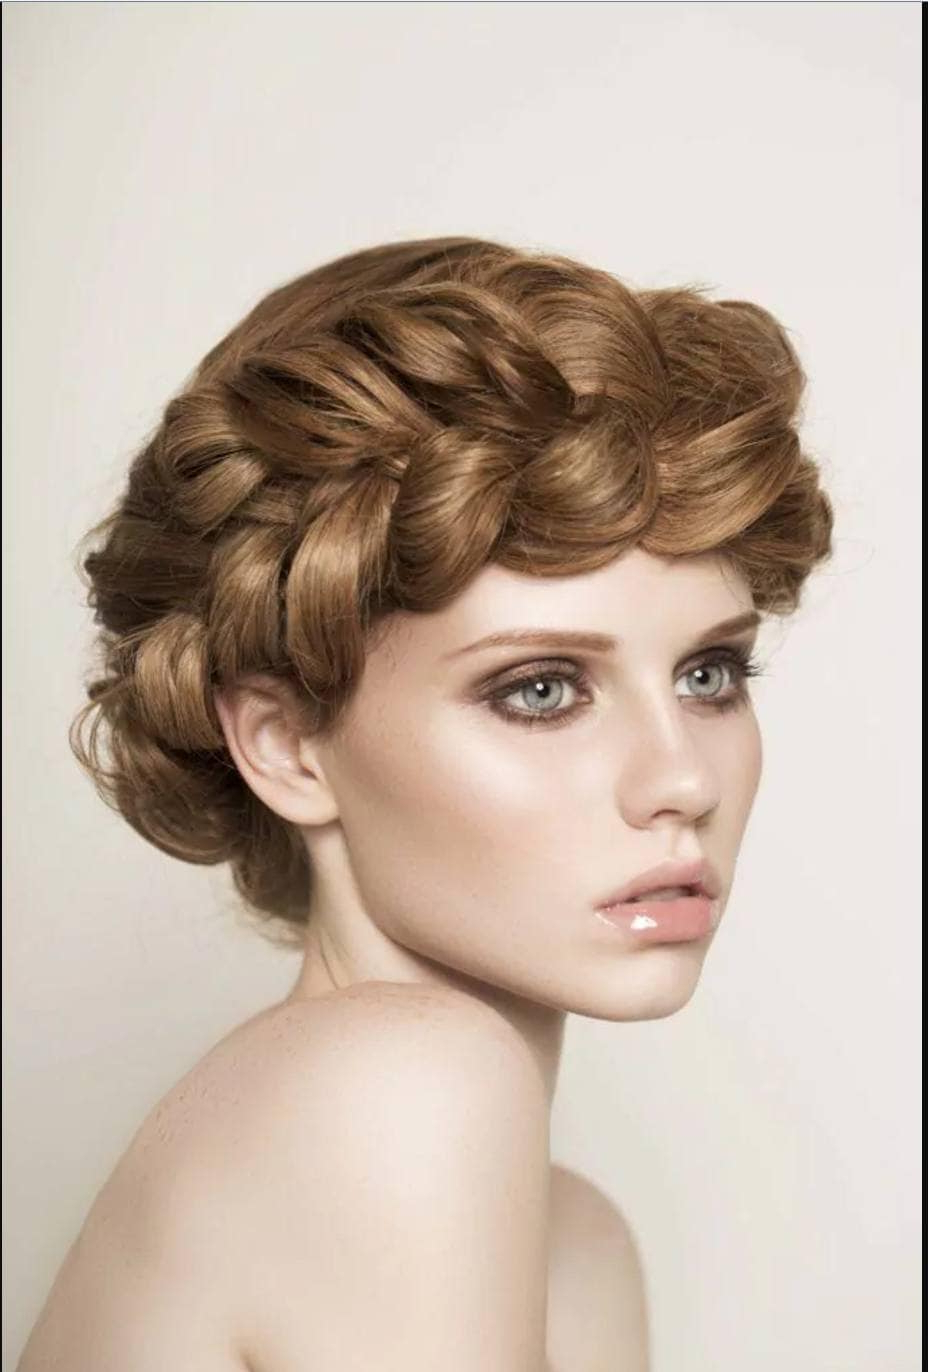 34 Ways To Wear Strawberry Red Blonde Hair: Colors, Cuts And Styles Intended For Current Long Feathered Strawberry Blonde Haircuts (View 4 of 20)